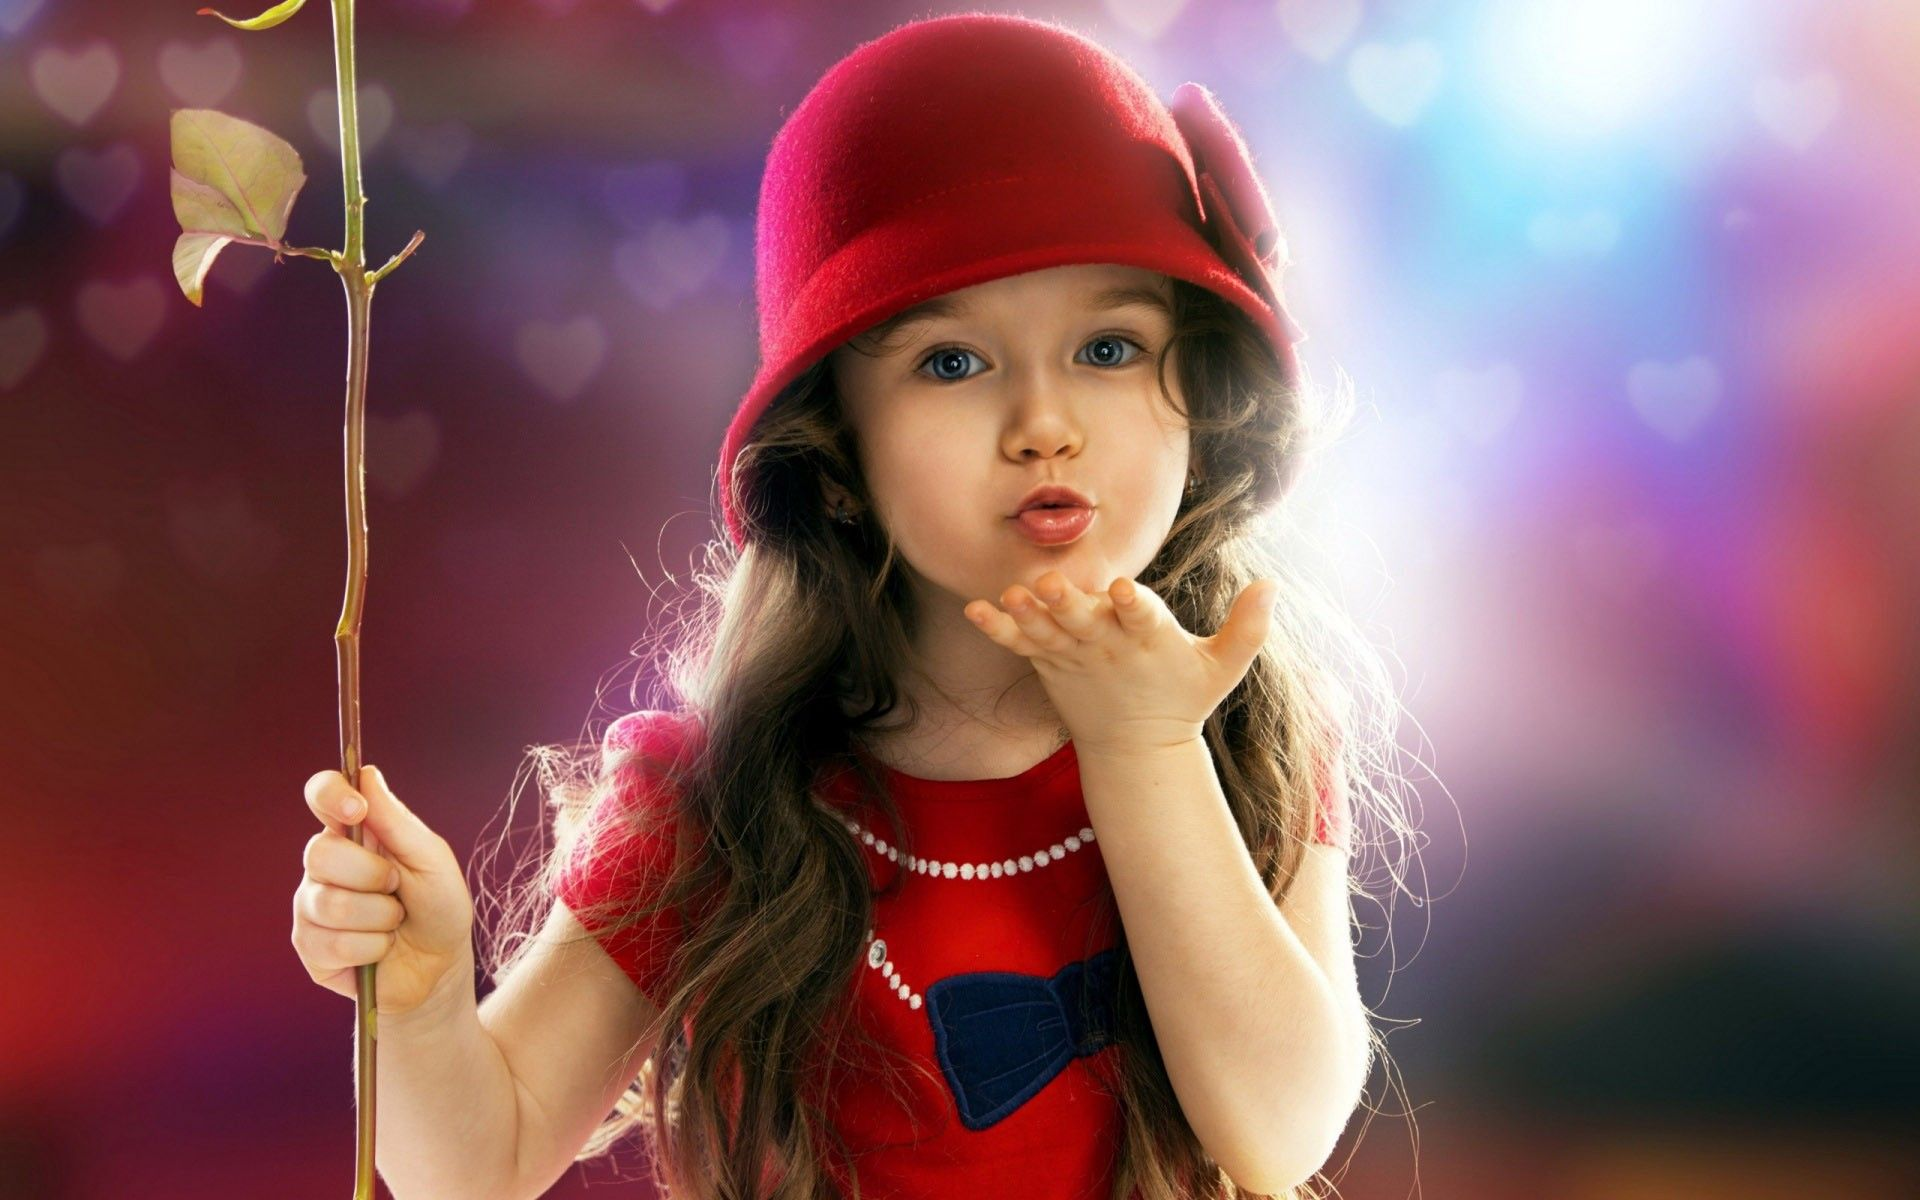 milliwall | cute child girl 19 hd wallpapers | the soul is healed